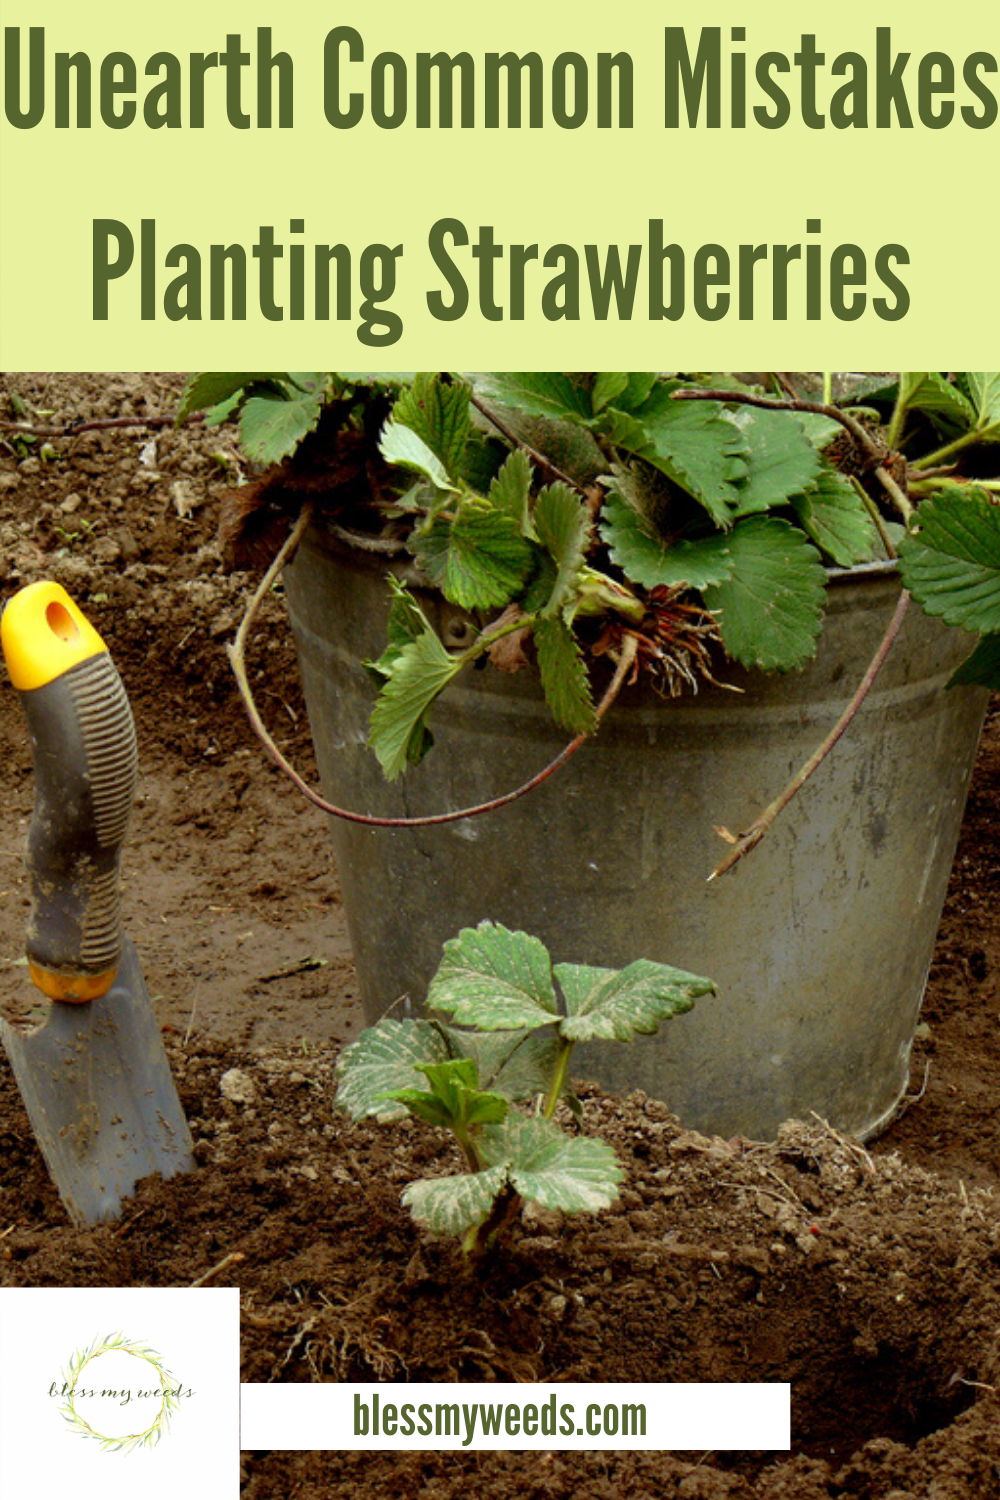 Ever wanted to grow your own strawberries? Let us help you. Bless My Weeds has created this post to offer tips about growing strawberries in all types of pots, vertically, and more. Think of a summer with fresh strawberries. Sounds great, right? Read on and then get growing without making common mistakes. #fruit #gardeningforbeginners #howtogrowstrawberies #verticalgardening